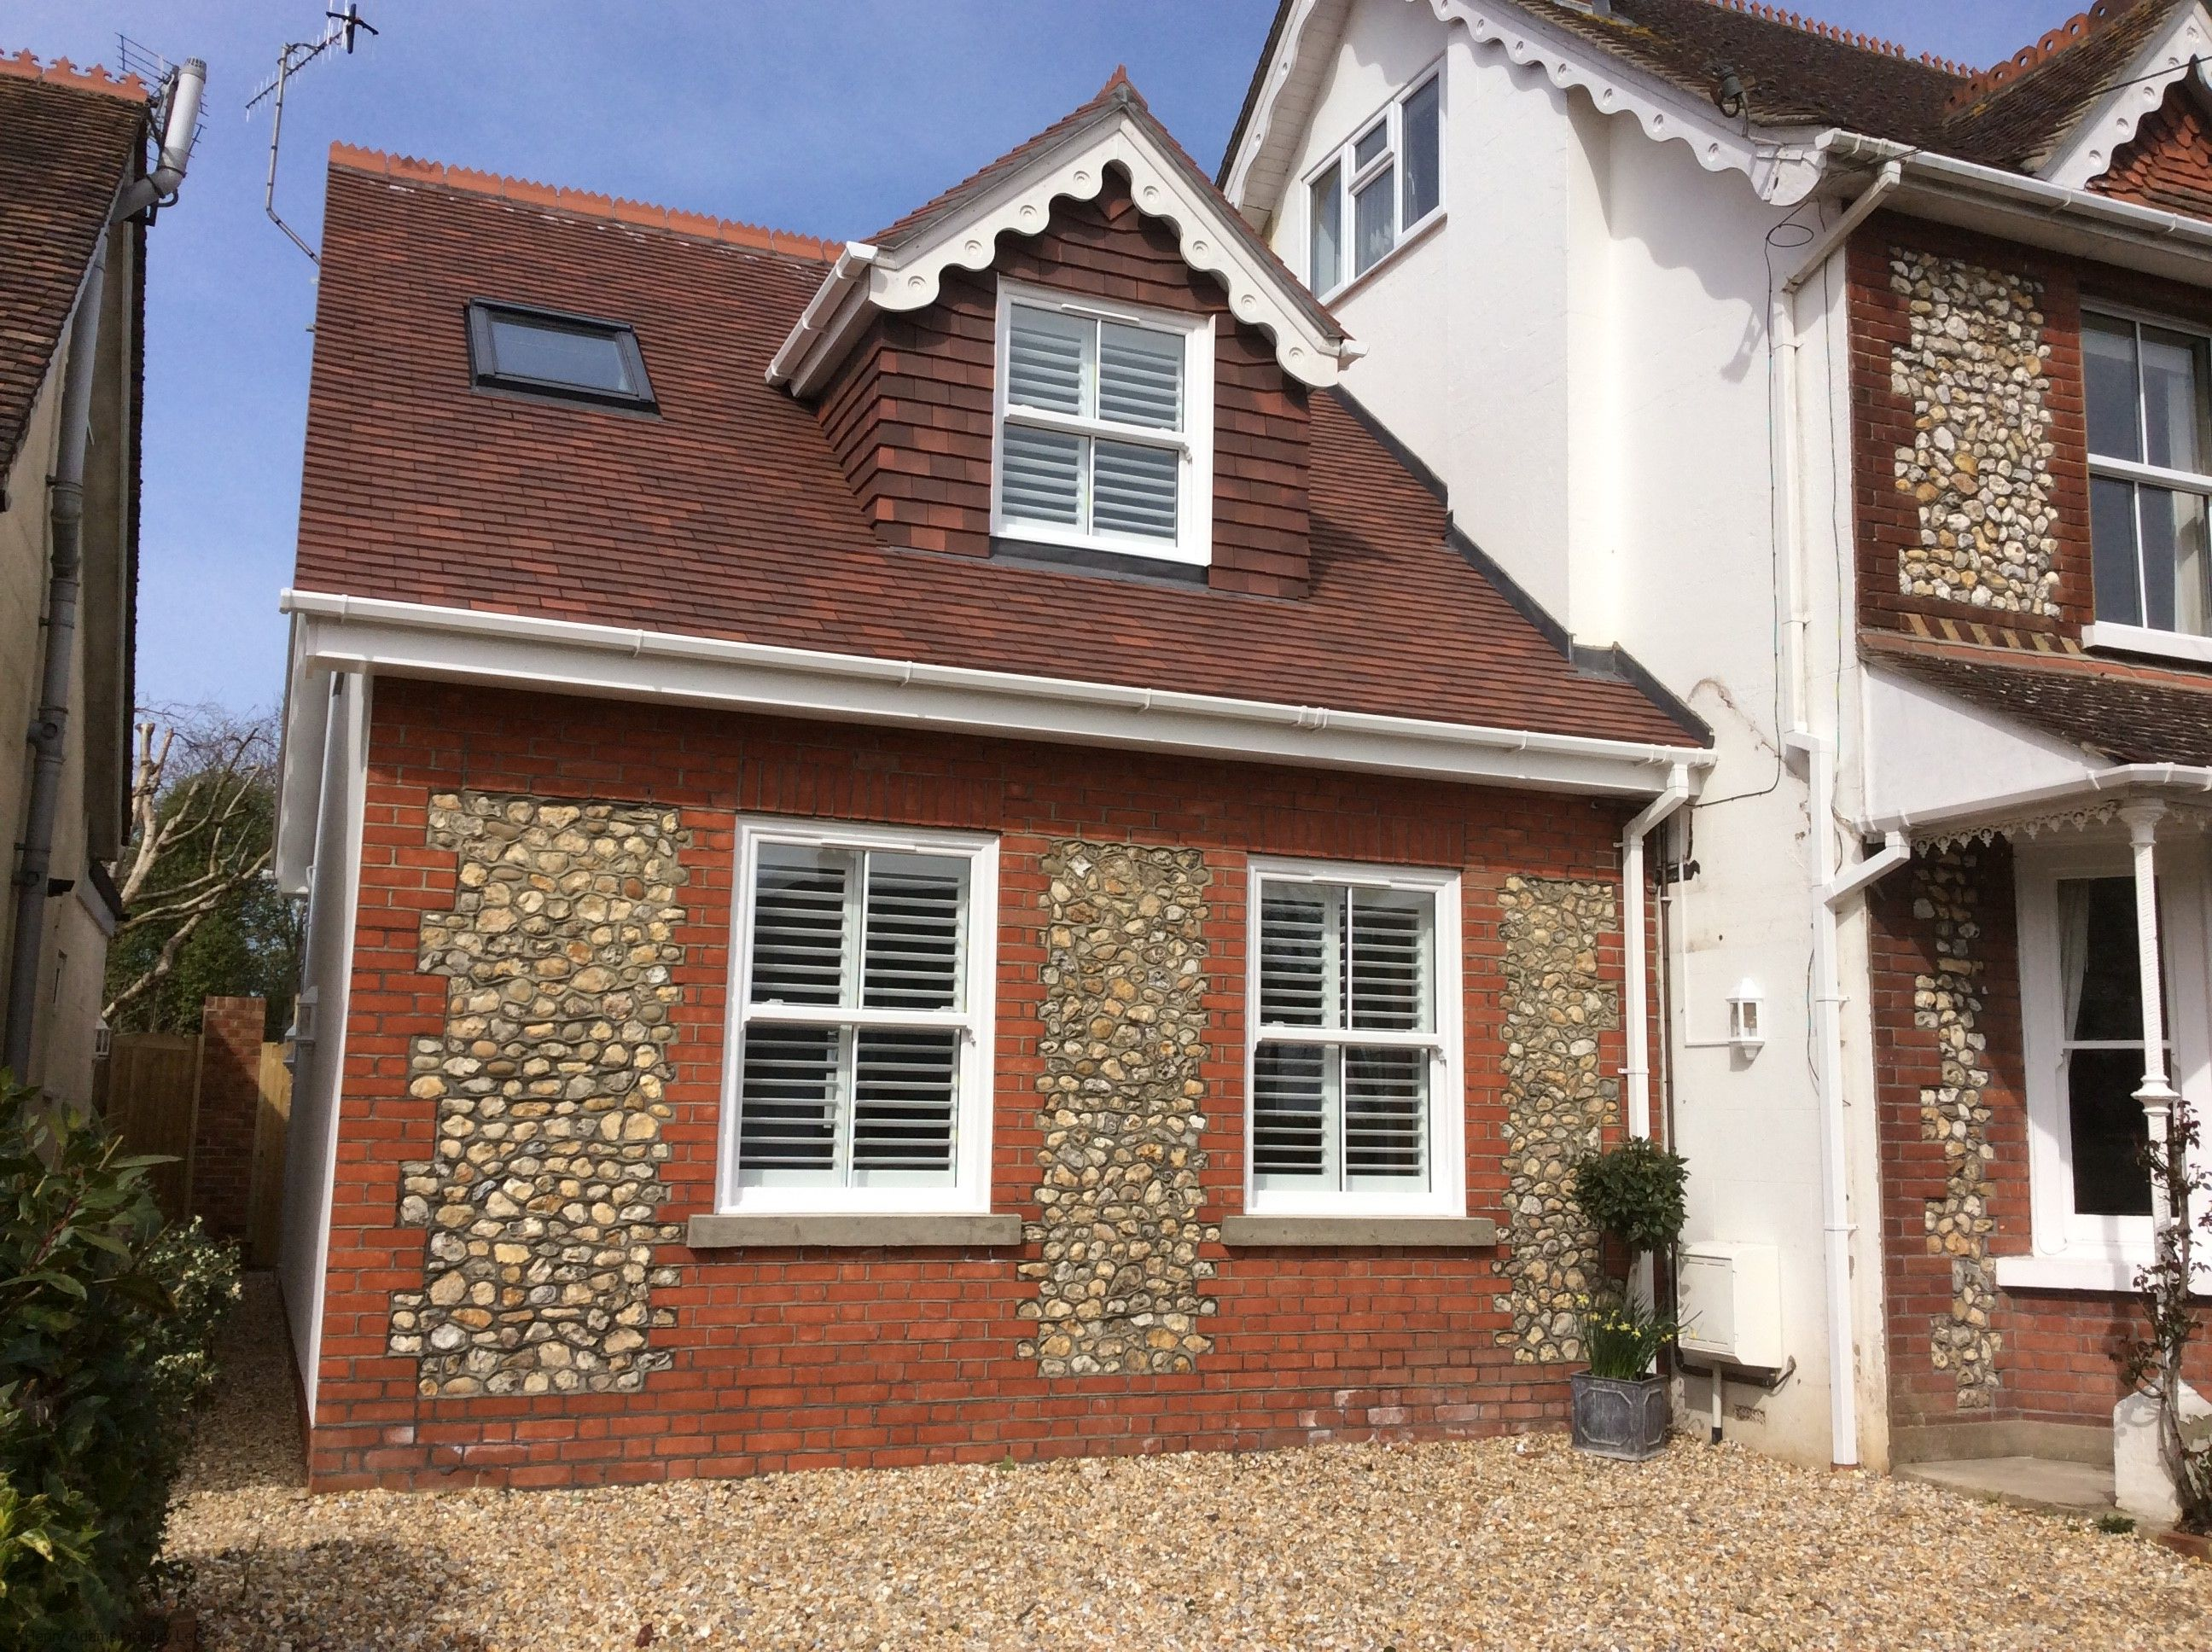 Castleton , Chichester Chichester, Sleeps 2, Self Catering Holiday Homes